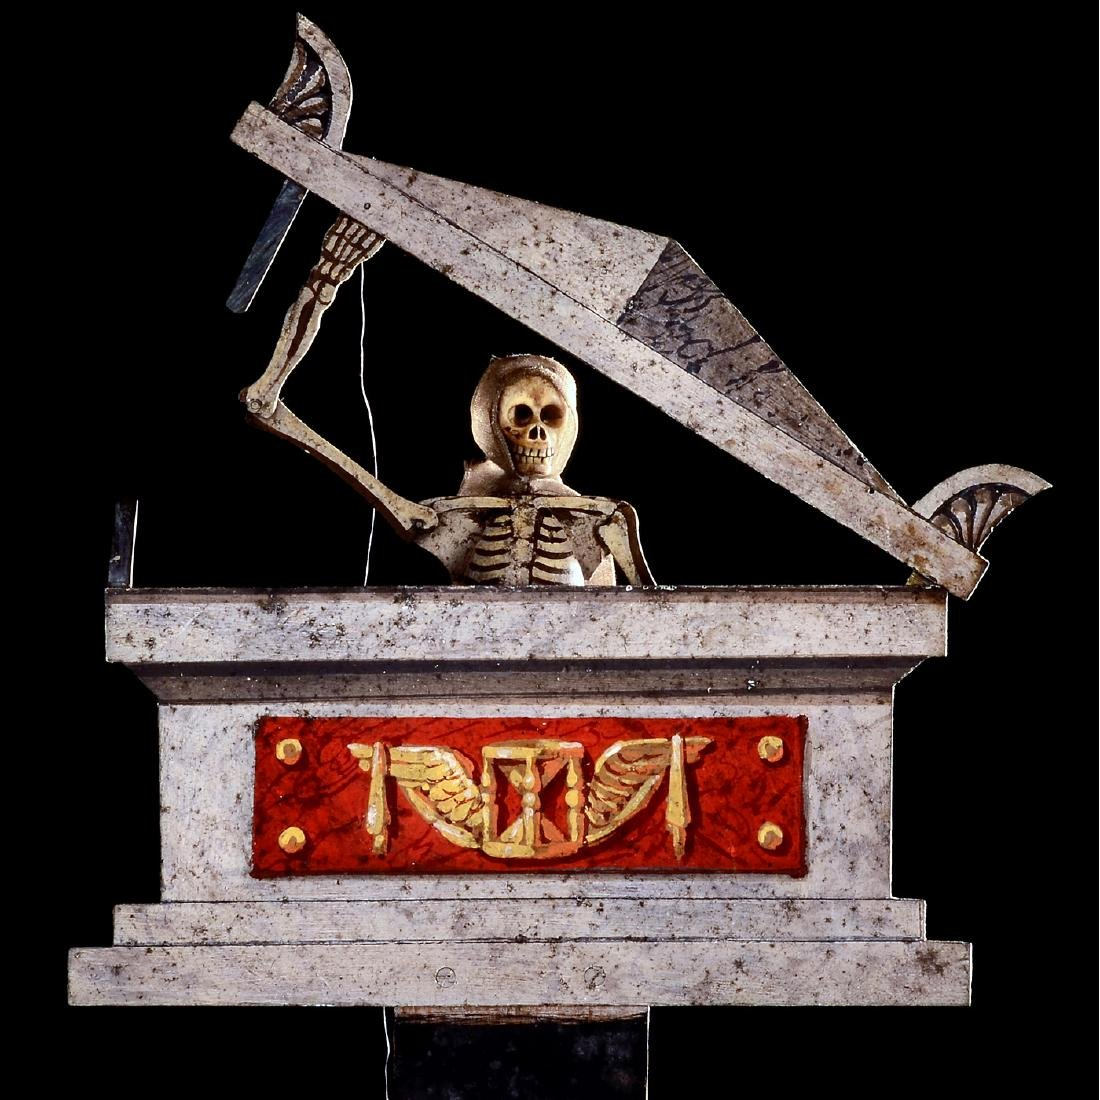 Moisse Molteni Fantascope Skeleton Illusion, c. 1820